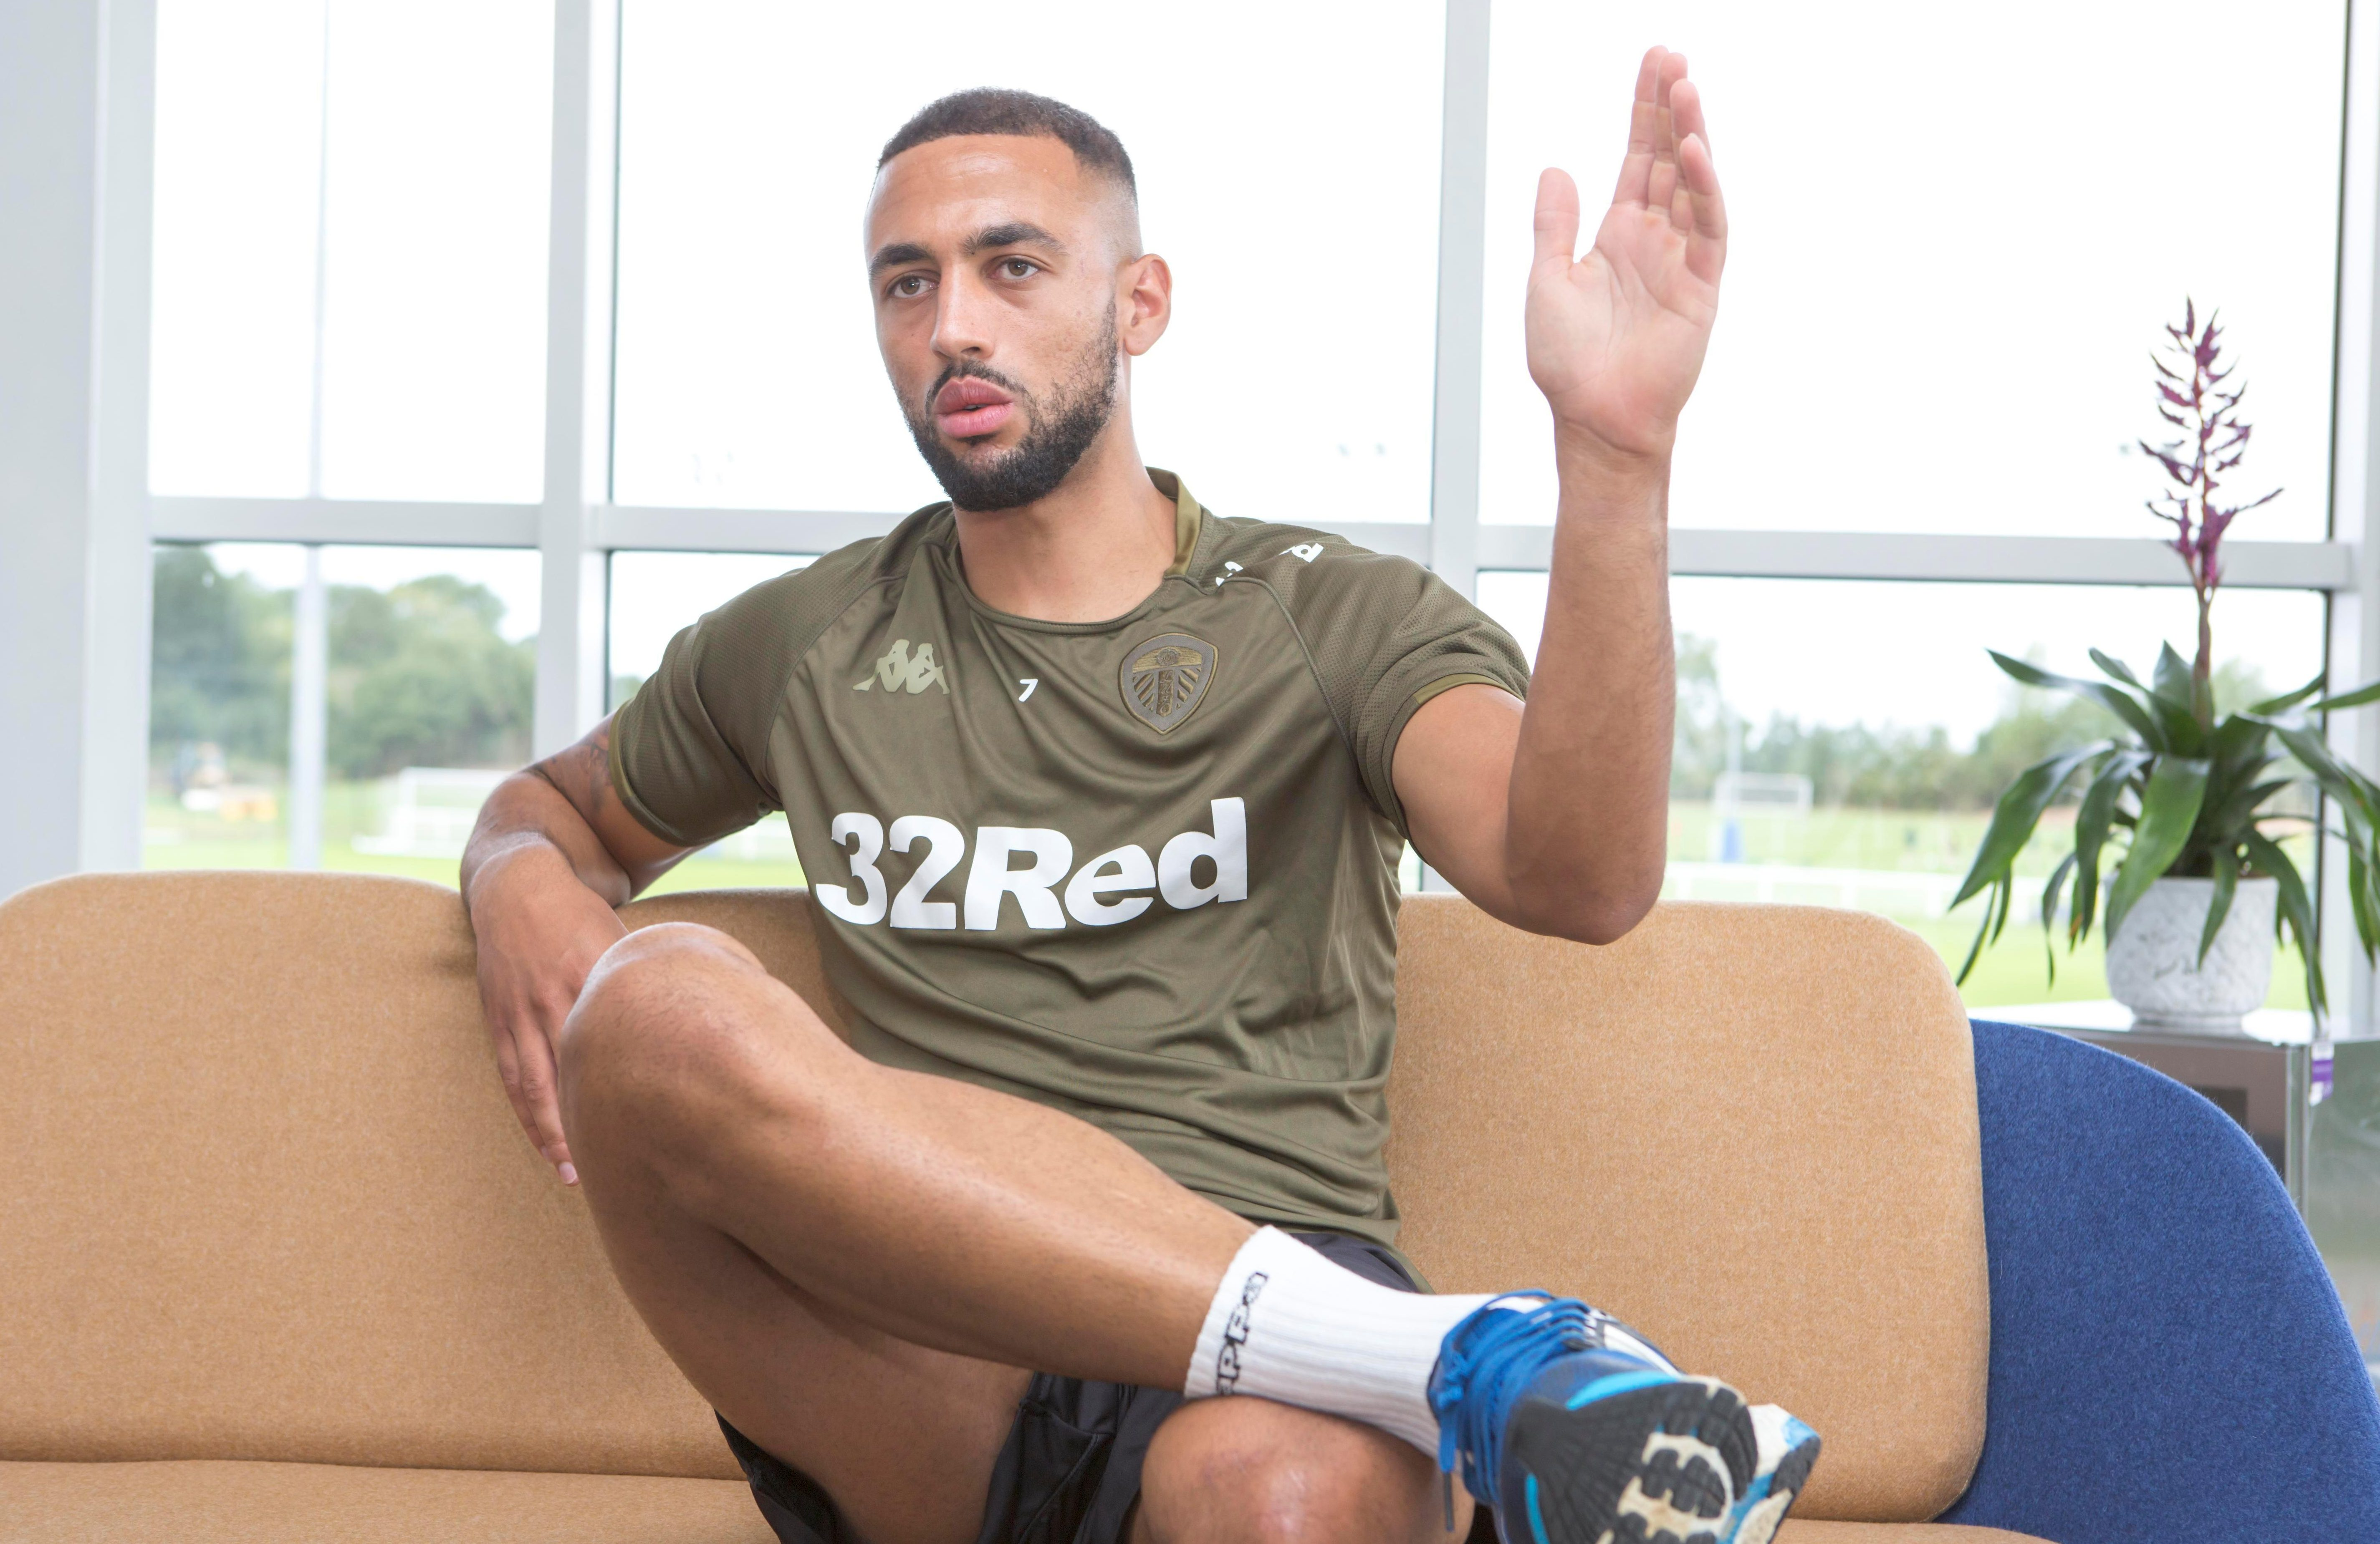 The Leeds United forward spoke exclusively to SunSport this week